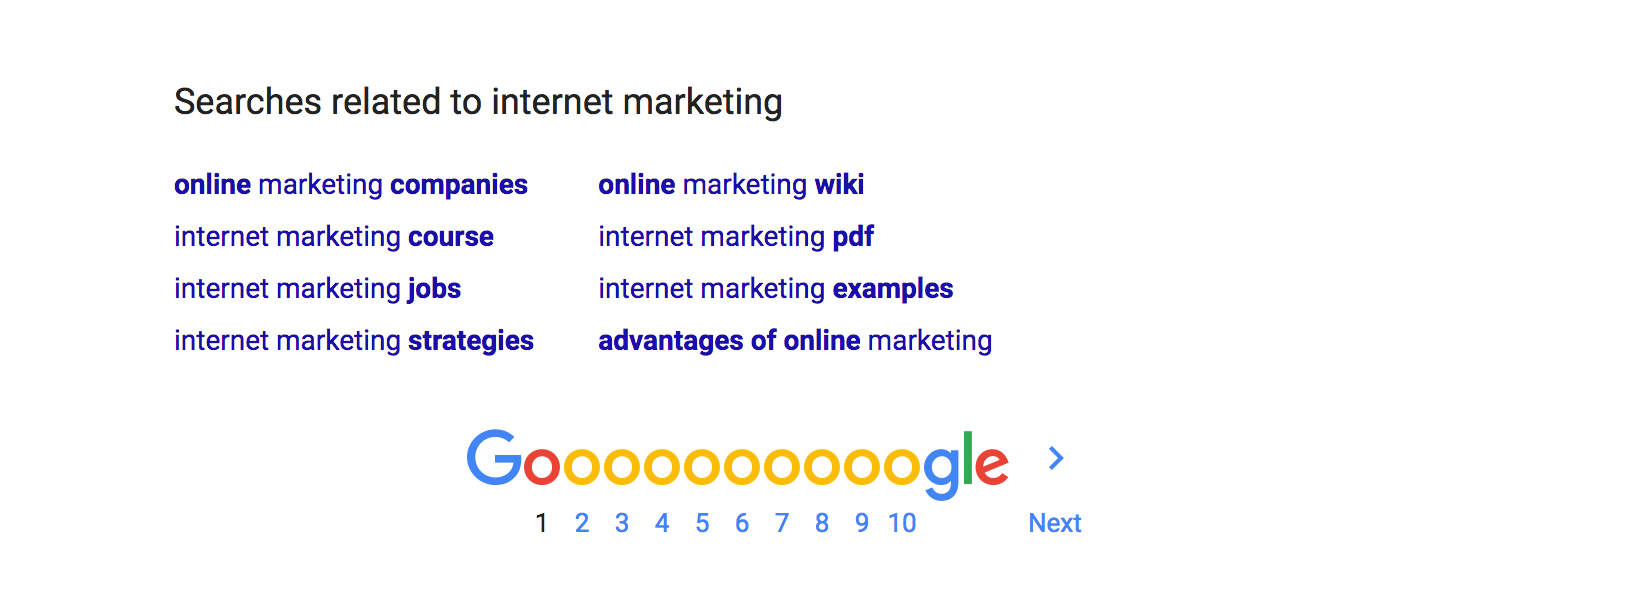 Google searches related to feature